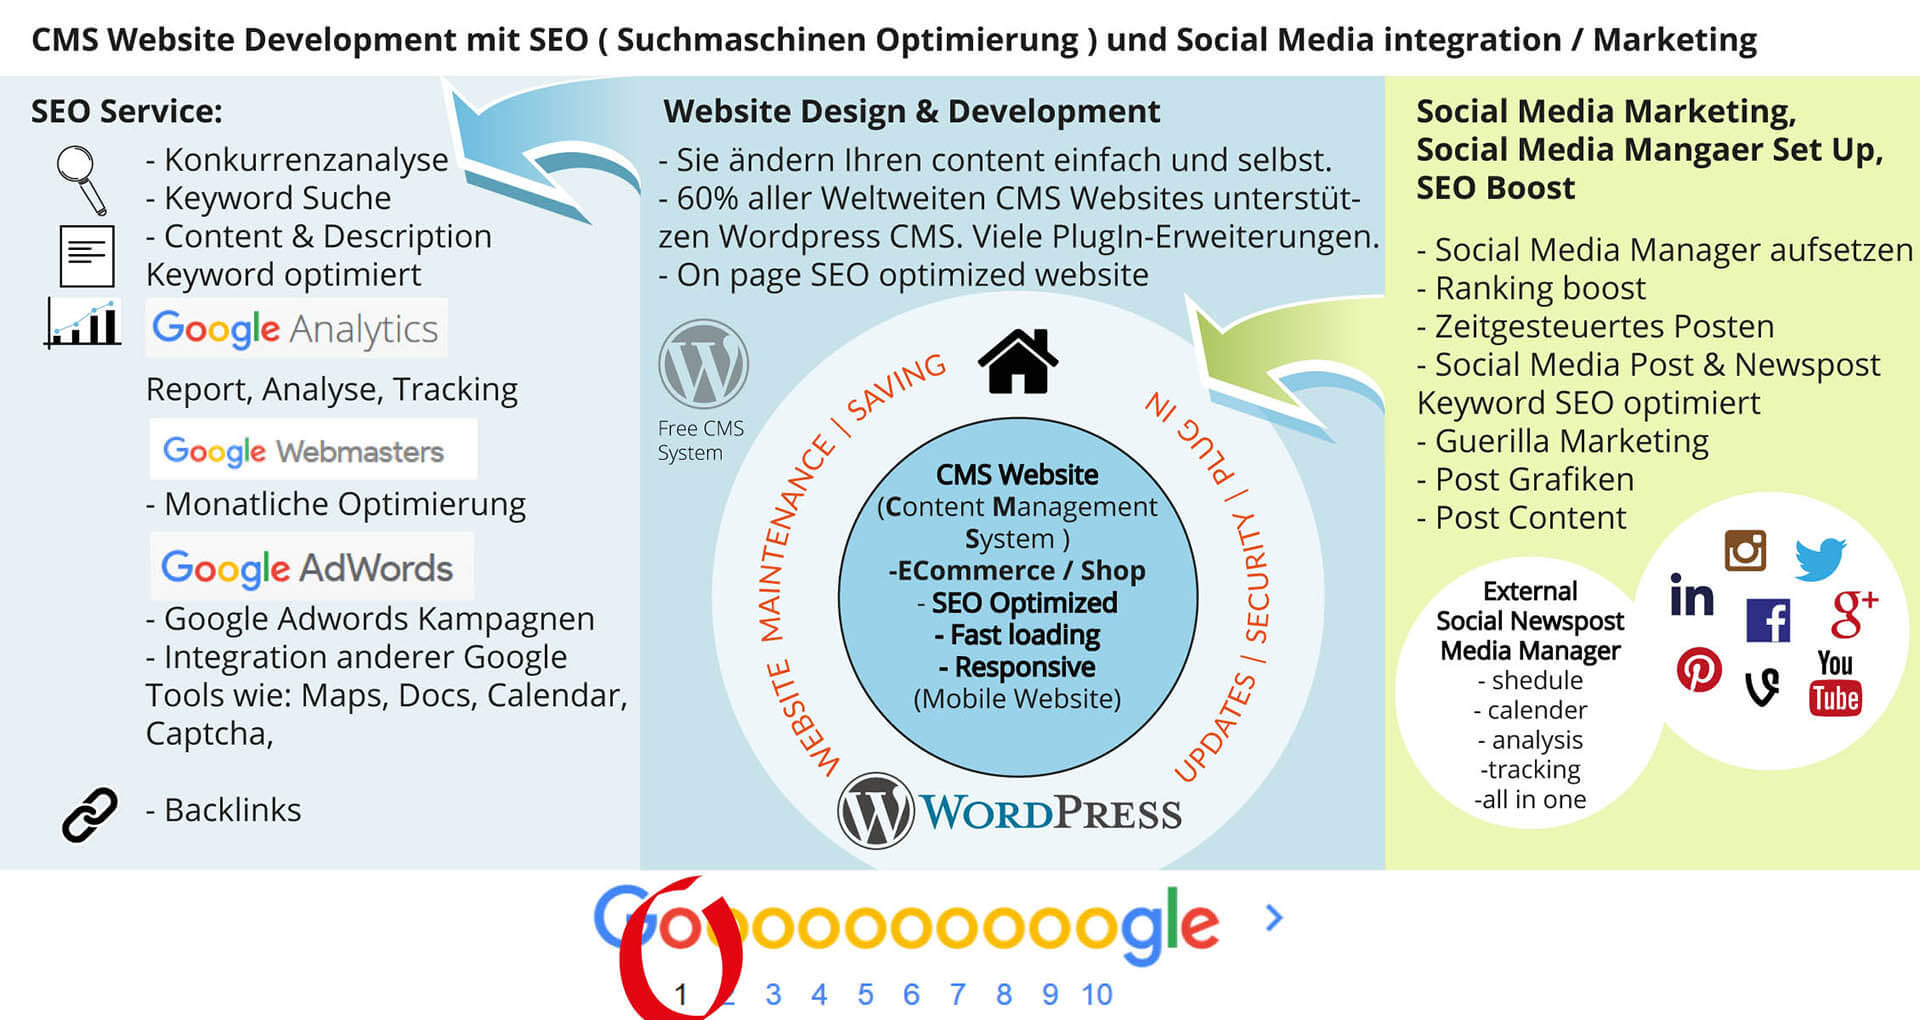 webdesign seo suchmaschinenoptimierung google social media marketing facebook twitter 3